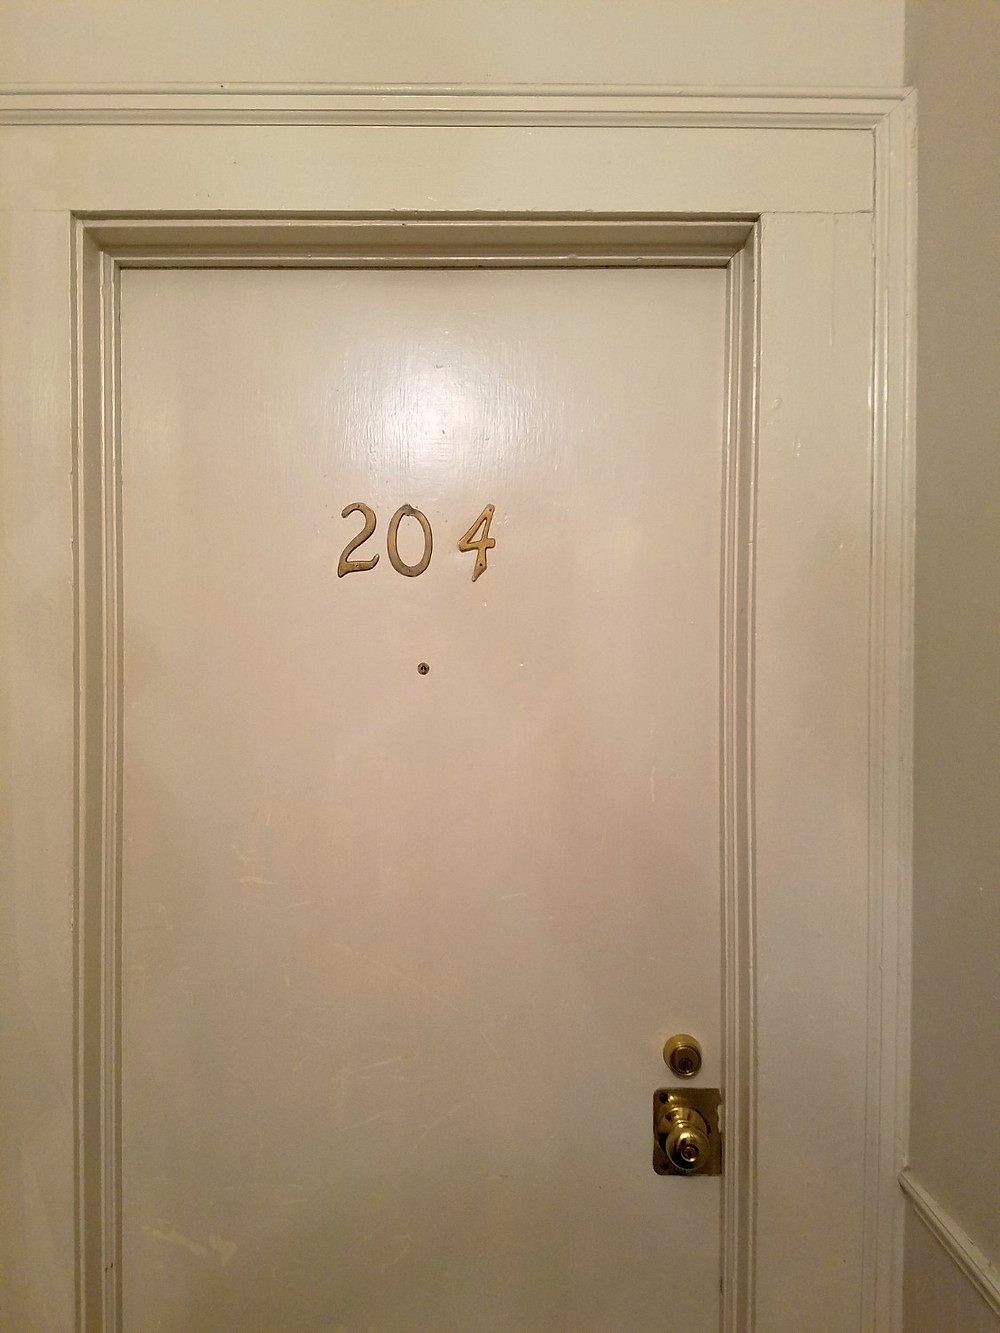 Andrew Jackson Hotel, New Orleans room 204